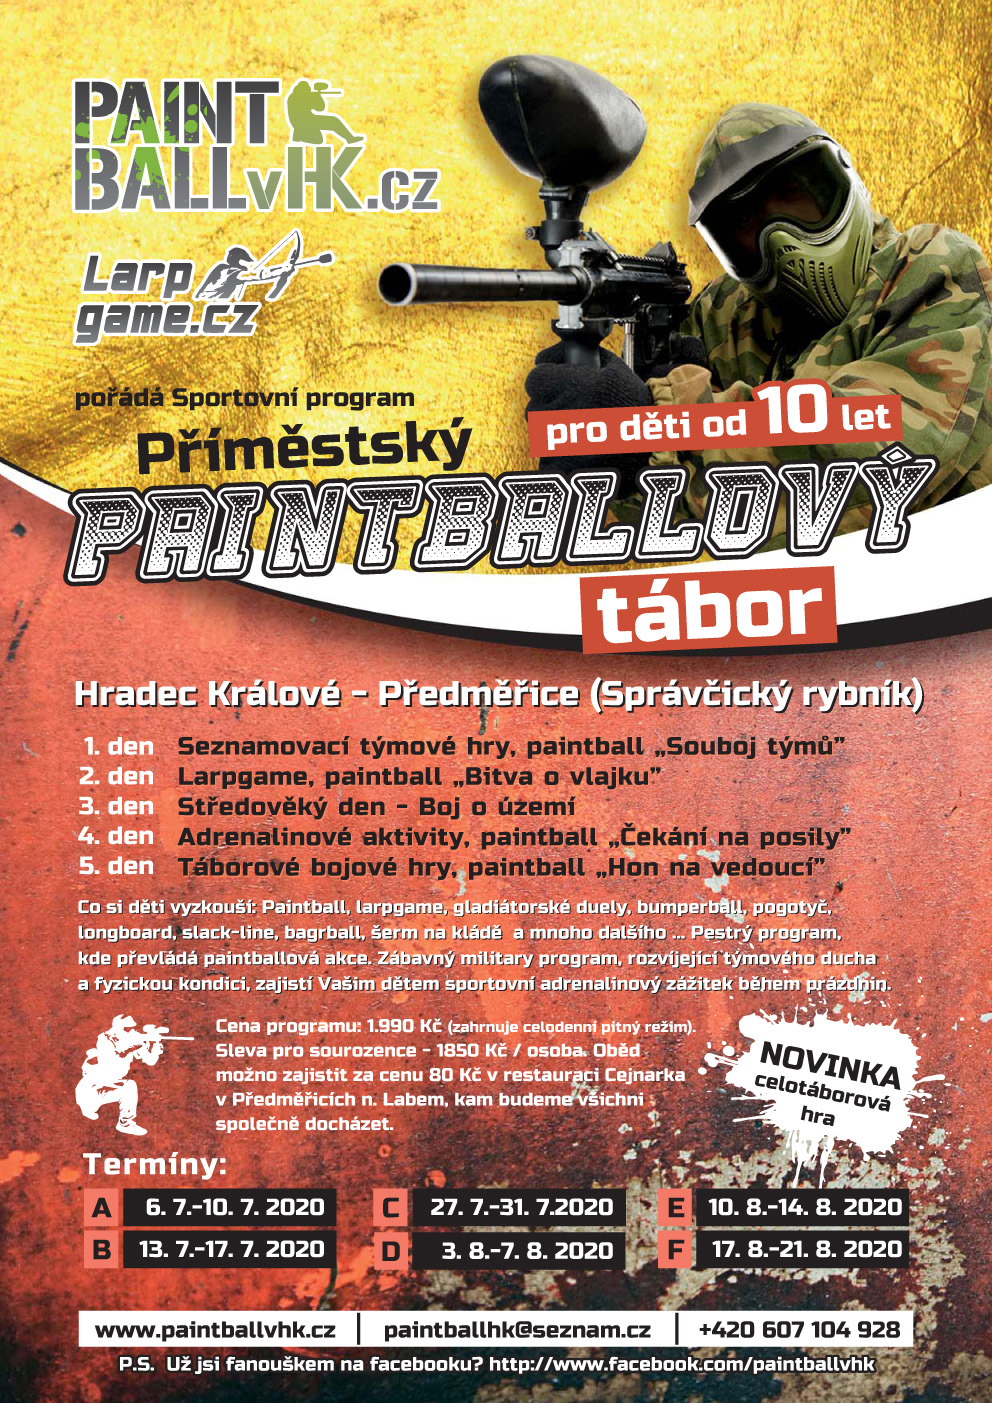 Paintball - Festival park